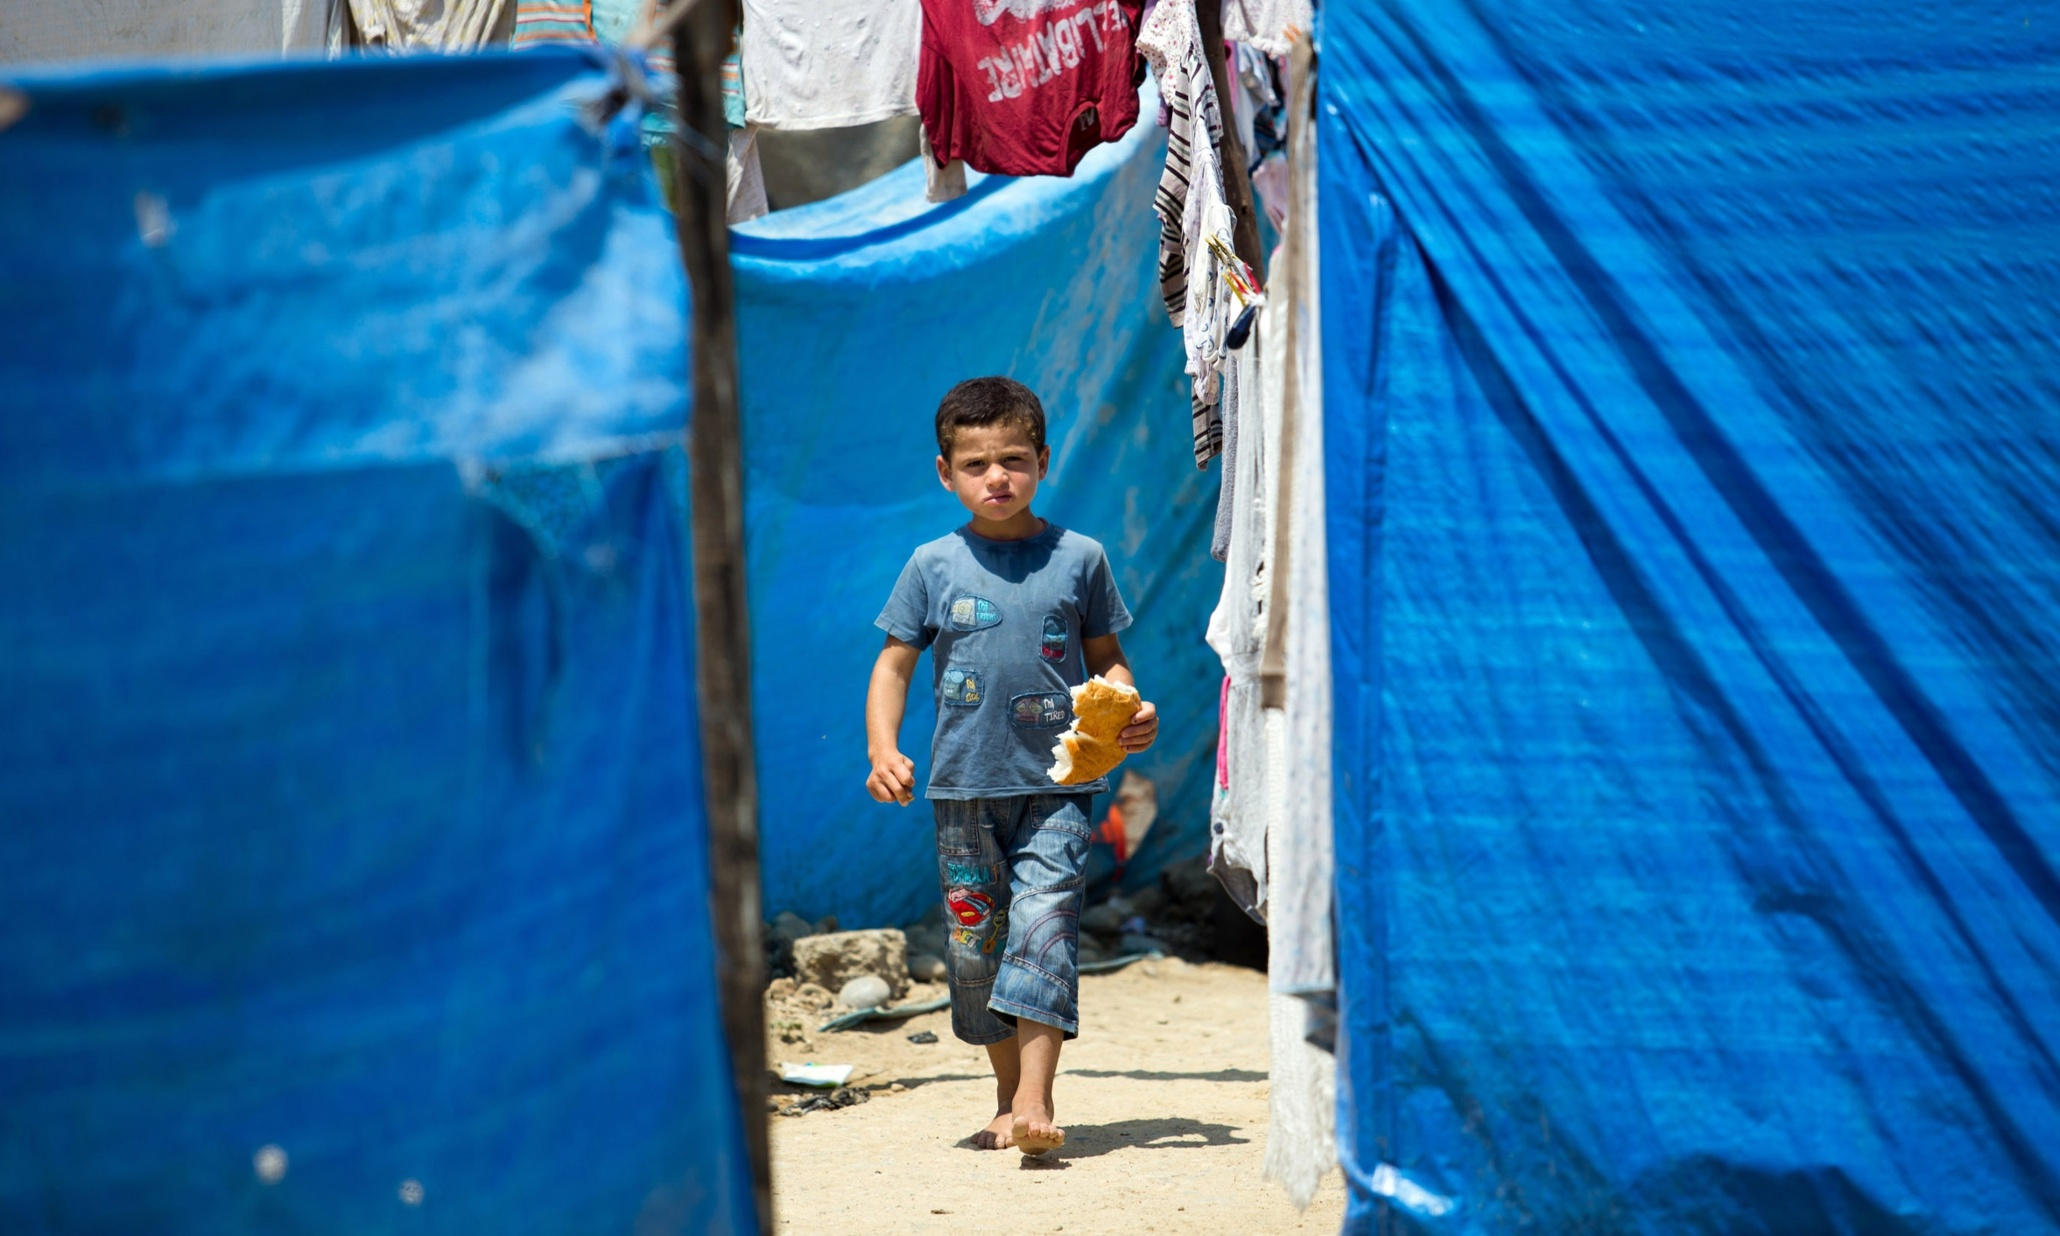 Syrian refugees: four million people forced to flee as crisis deepens